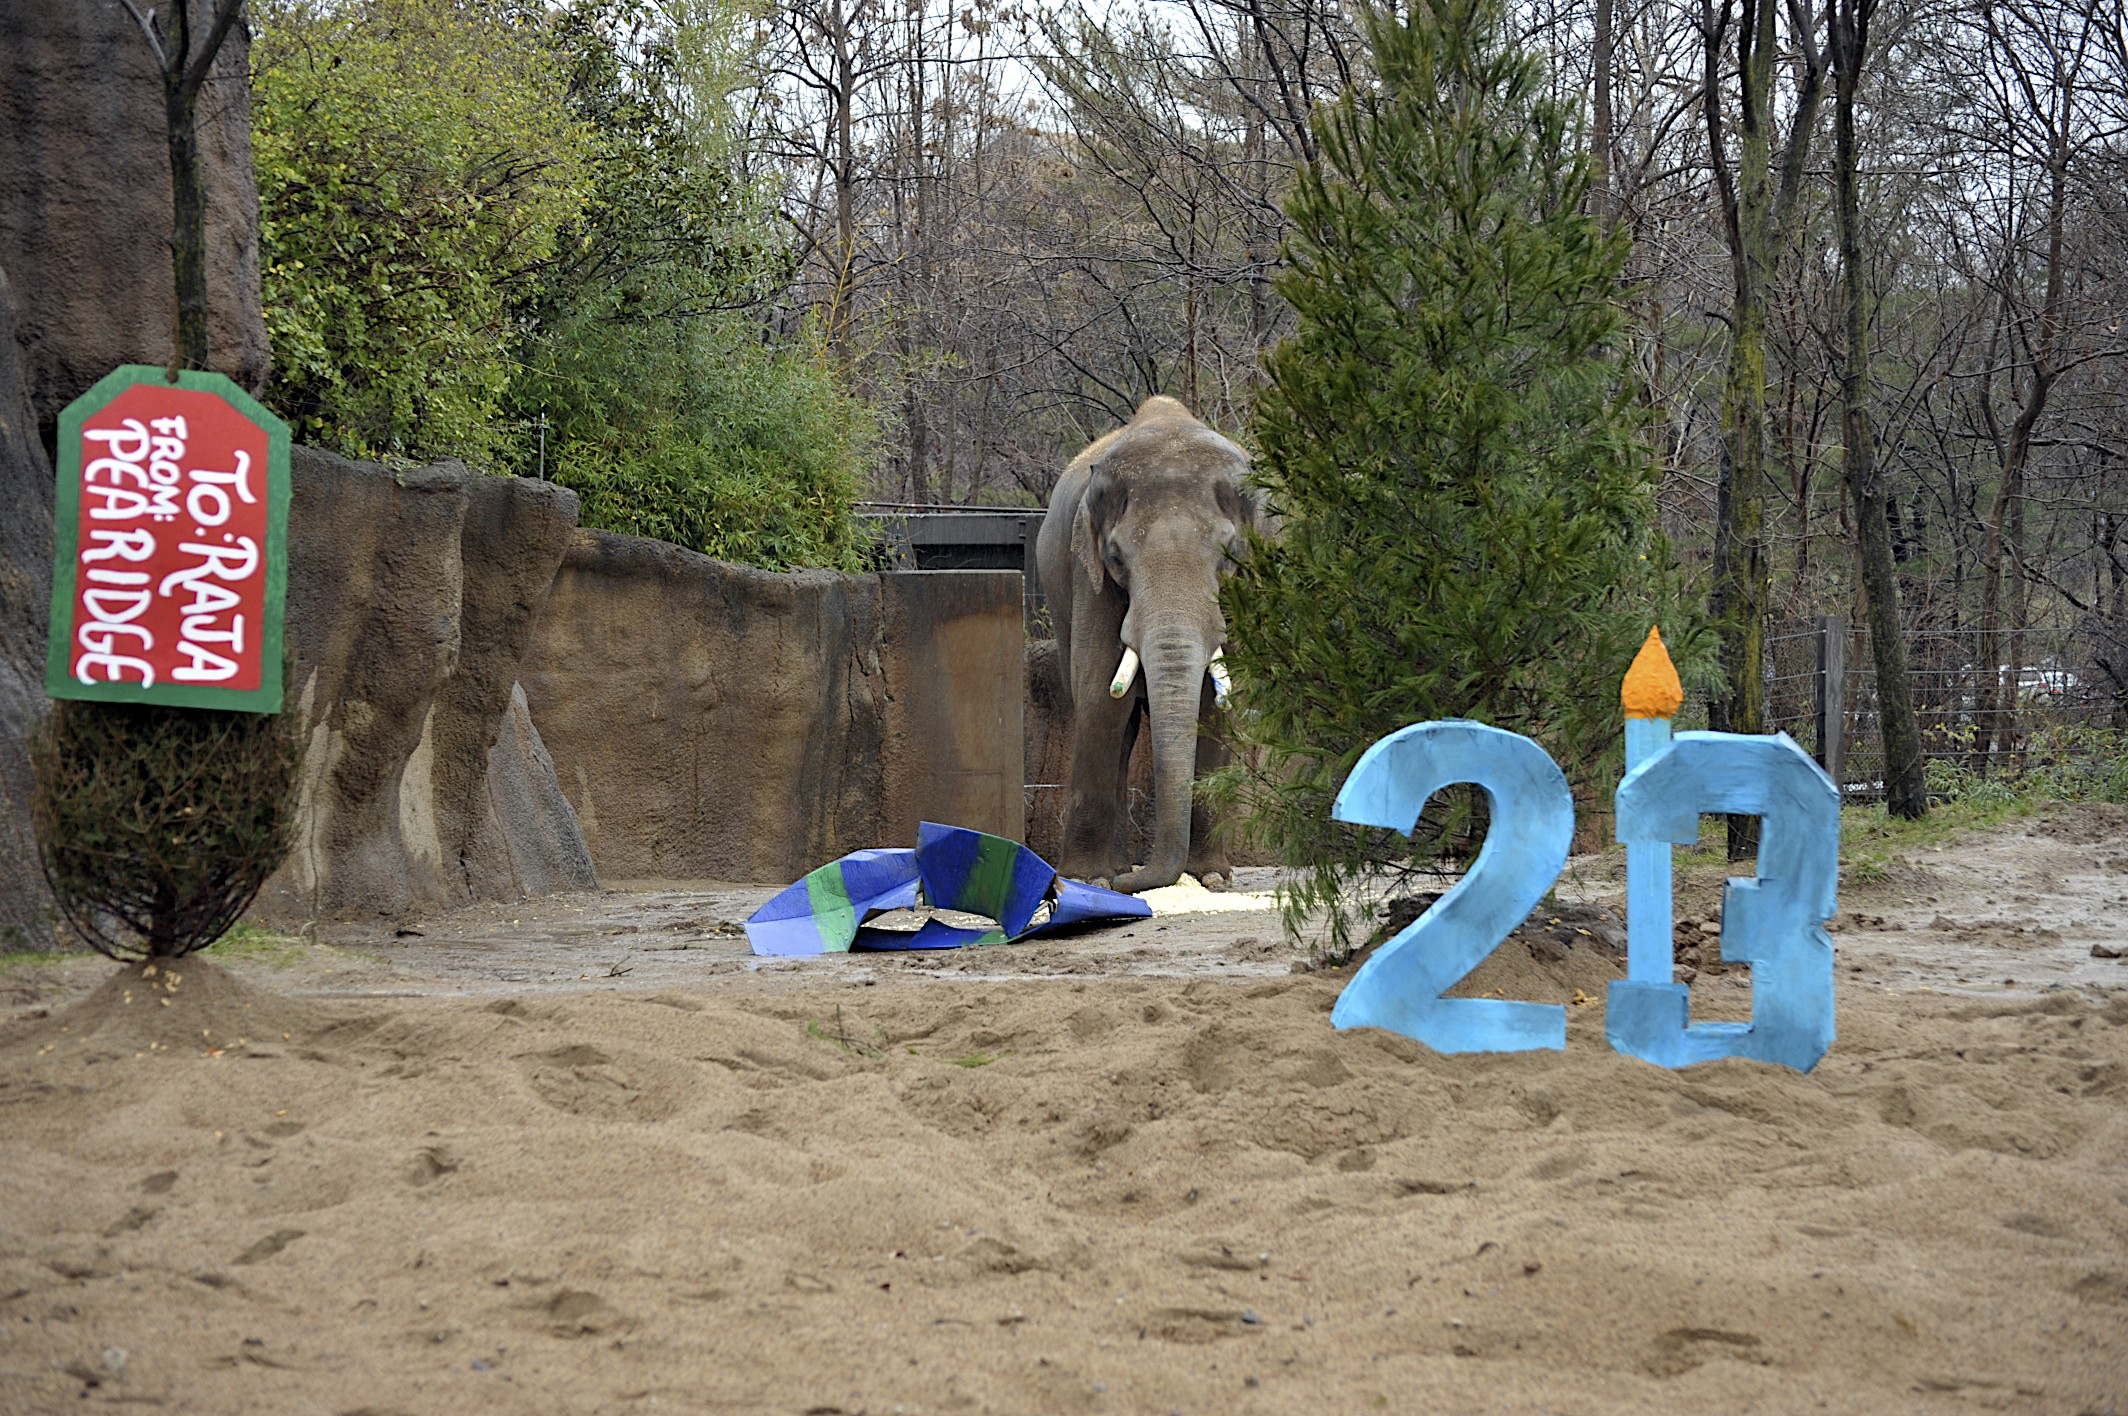 Birthday Party St Louis Zoo Image Inspiration of Cake and Birthday